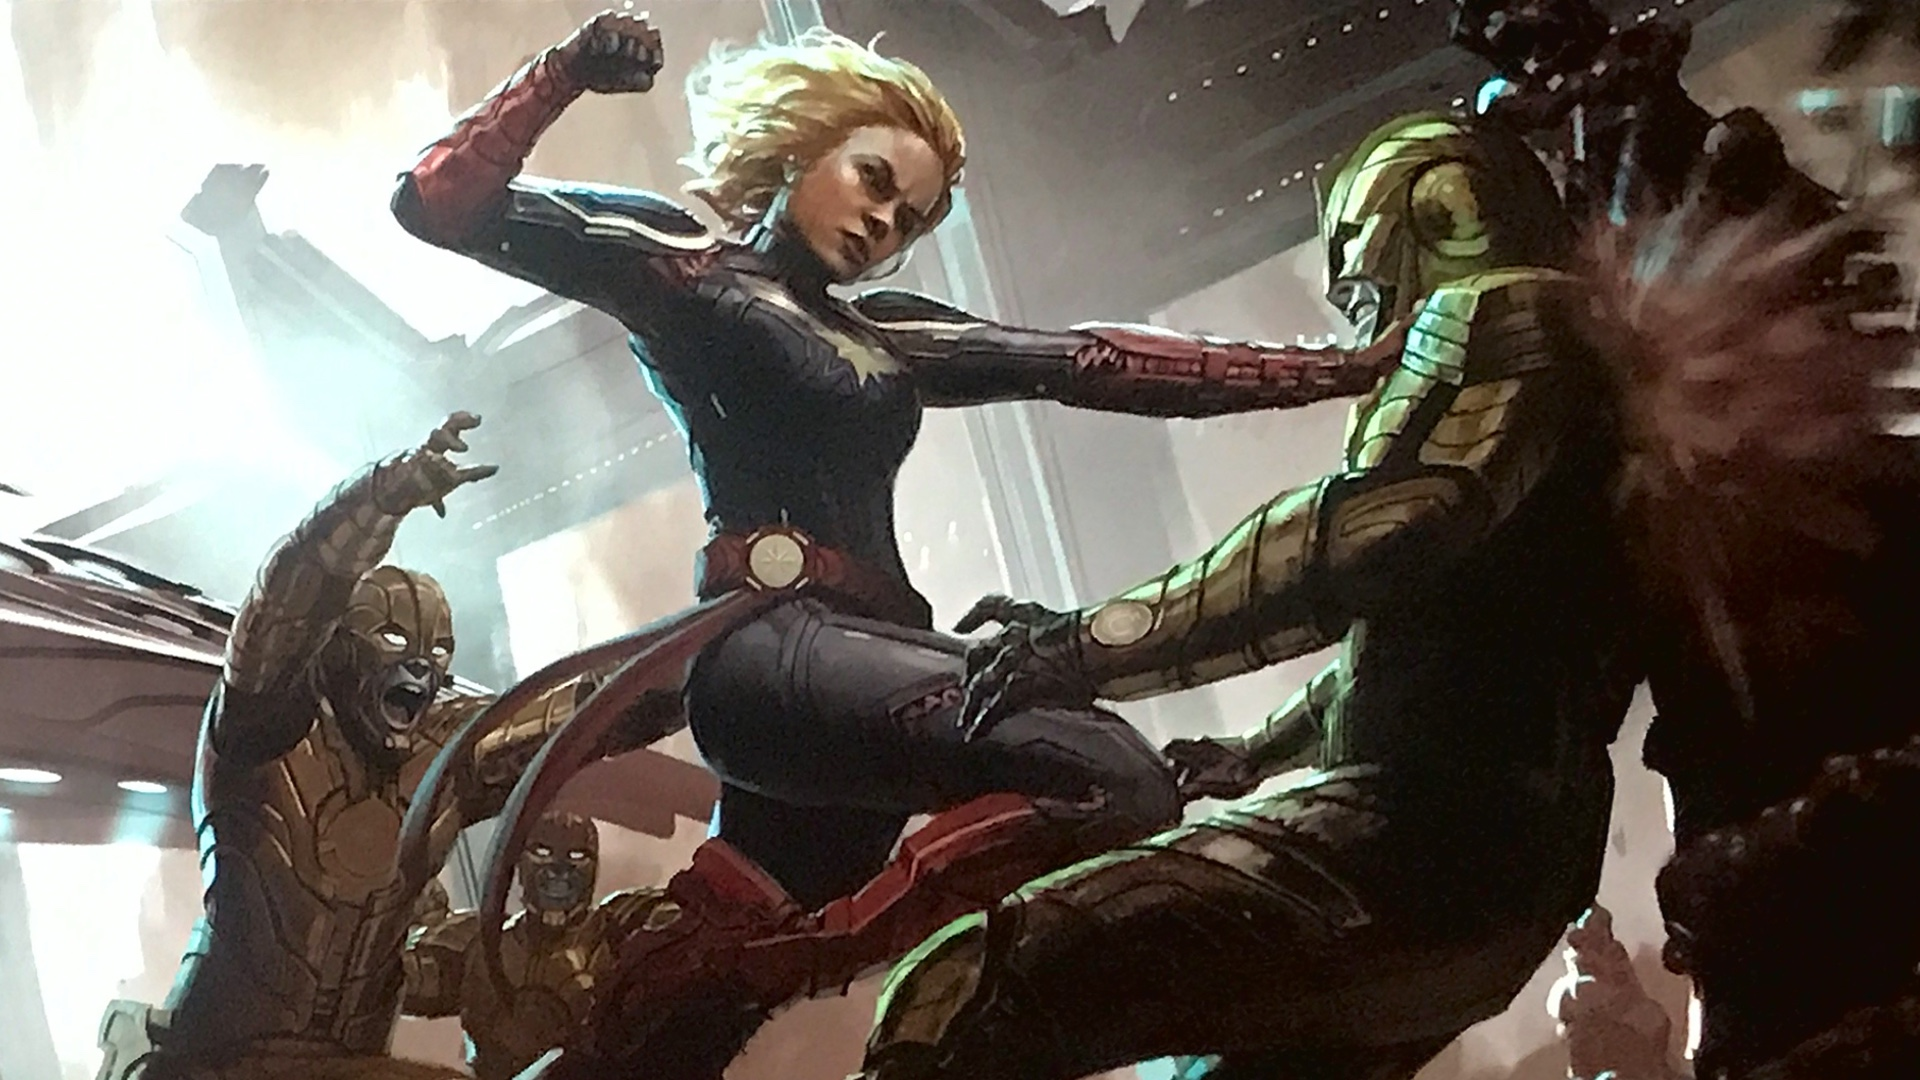 the-villain-that-ben-mendelsohncould-be-playing-in-captain-marvel-has-reportedly-been-revealed-social.jpg